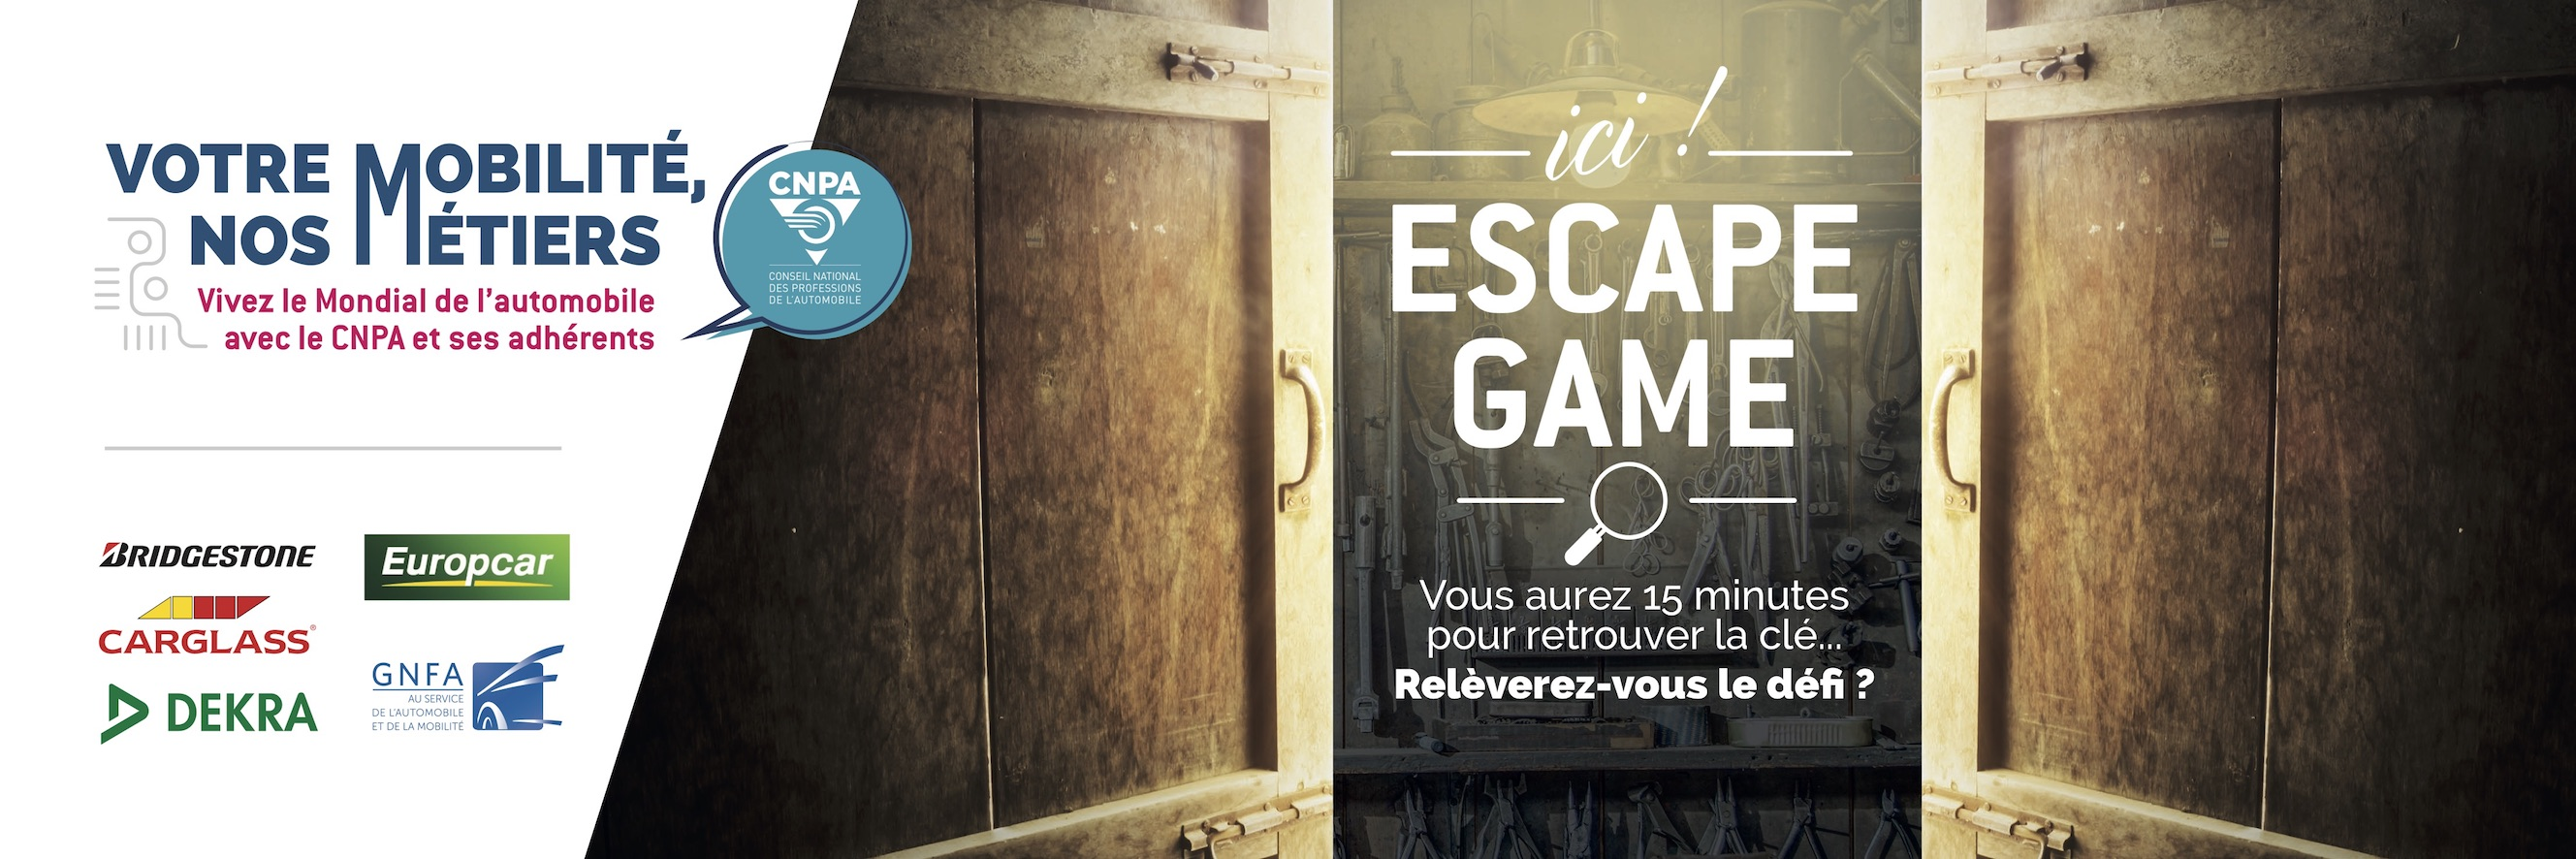 Mondial de l'auto - Escape Game CNPA